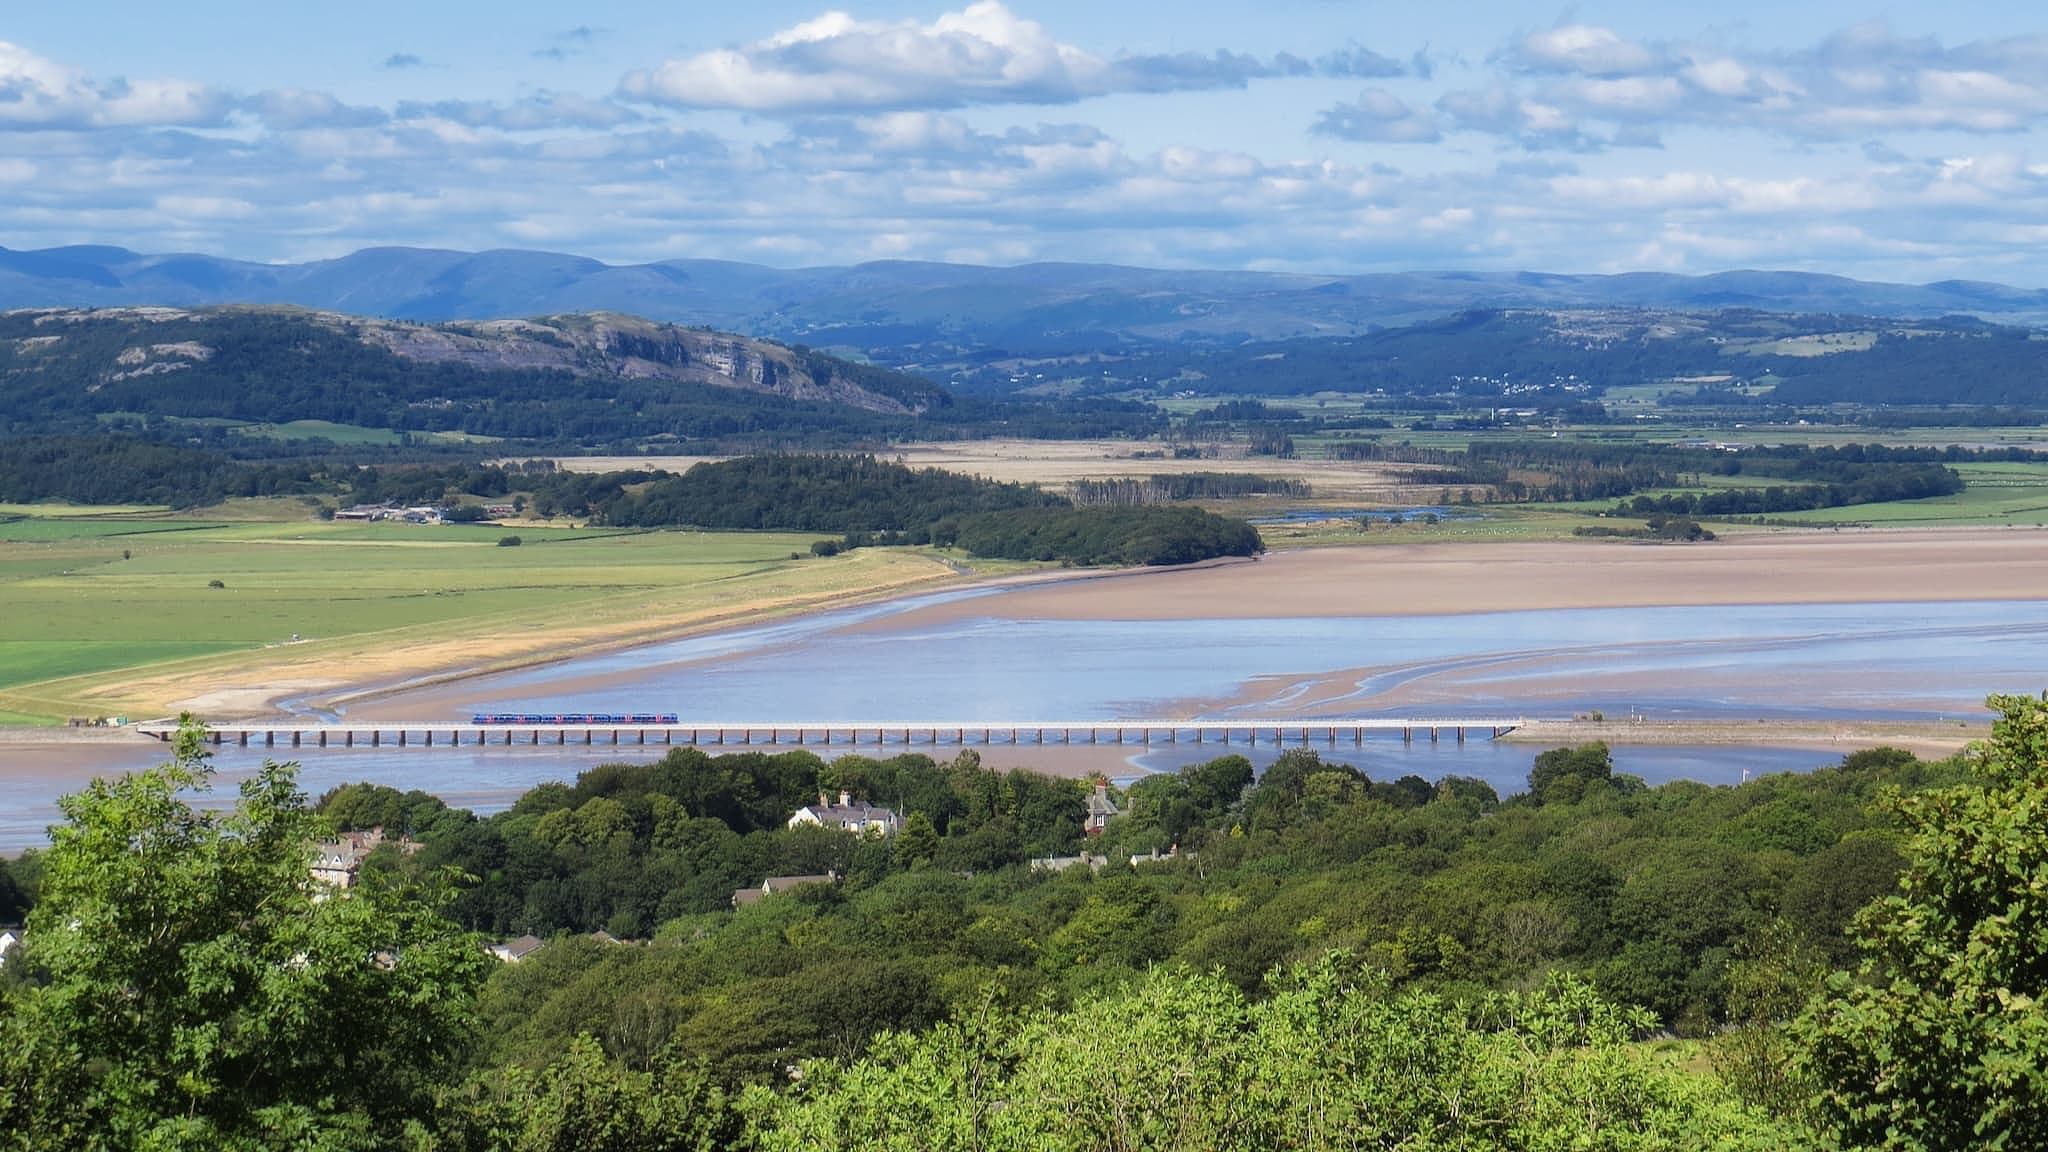 View over the Kent Viaduct to the southern Lake District from Arnside Knott. Photo by Alastair Rae, licensed CC-BY-SA-2.0